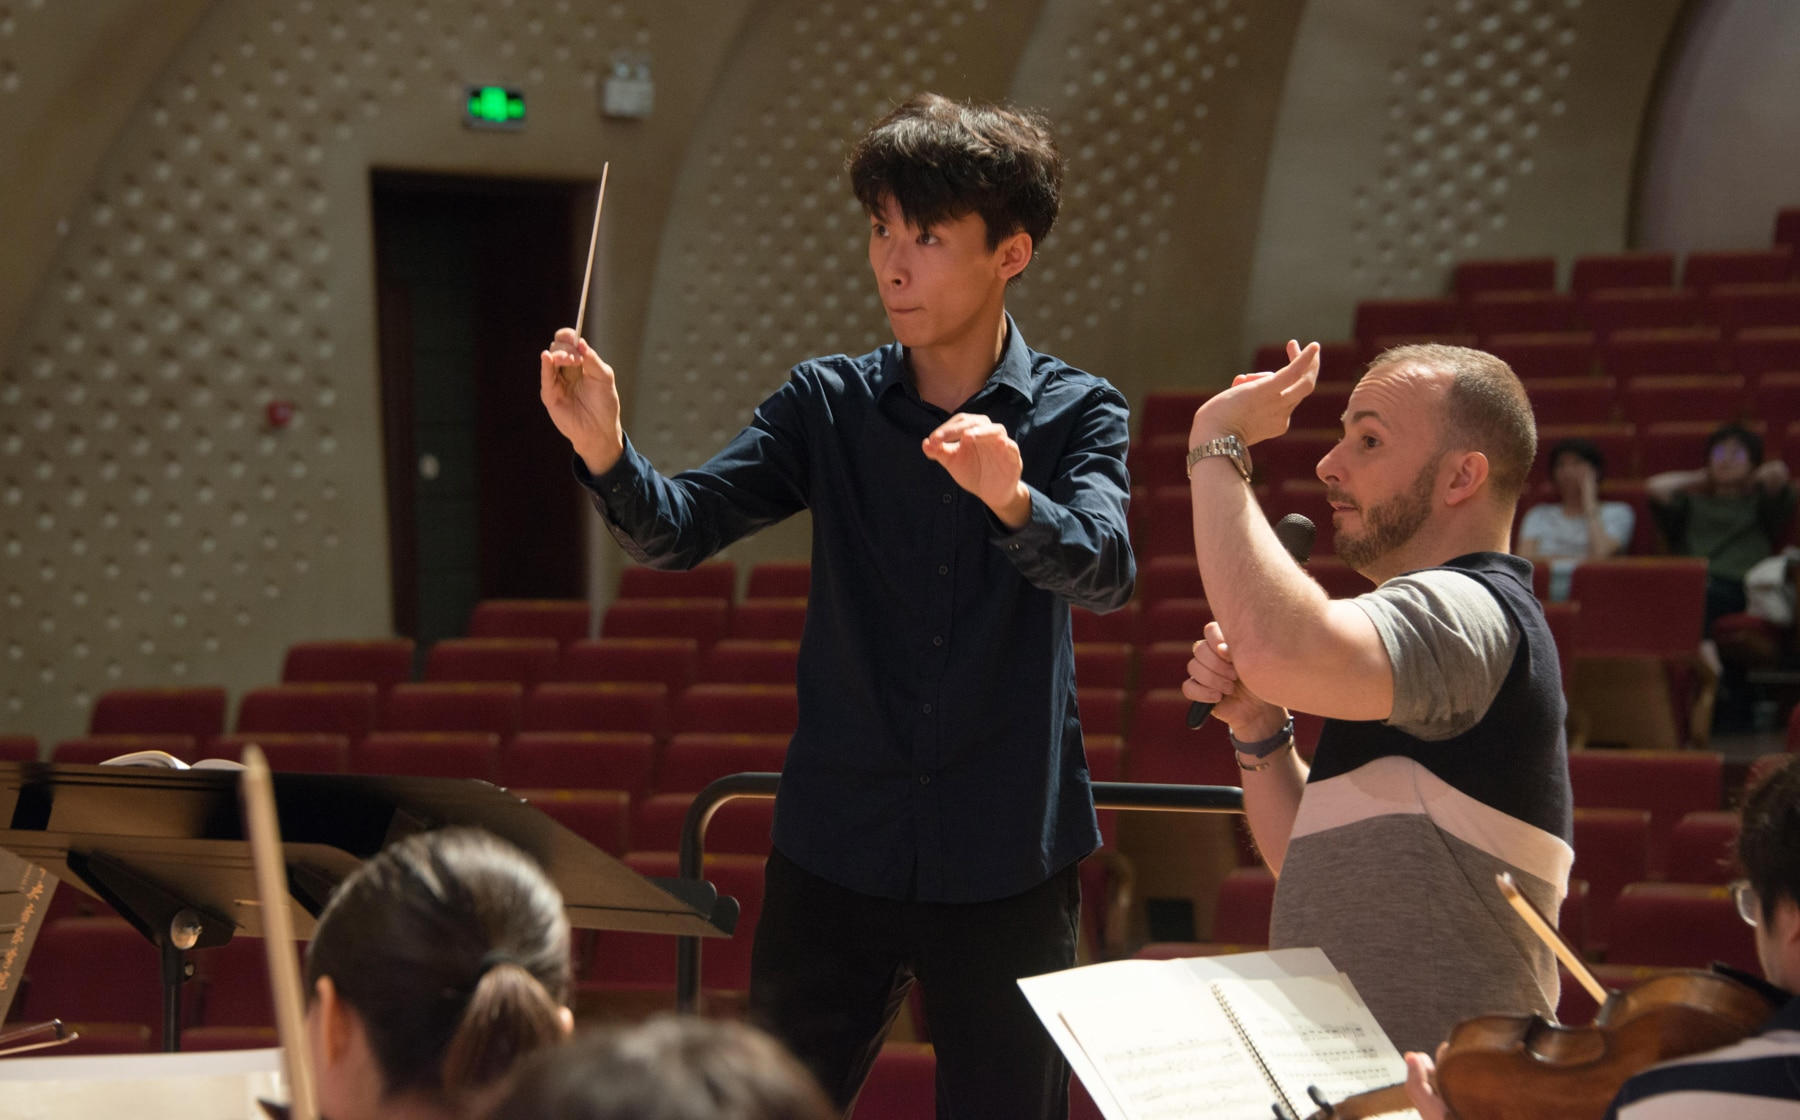 Young man gesturing with baton, another man directing him (Philadelphia Orchestra)